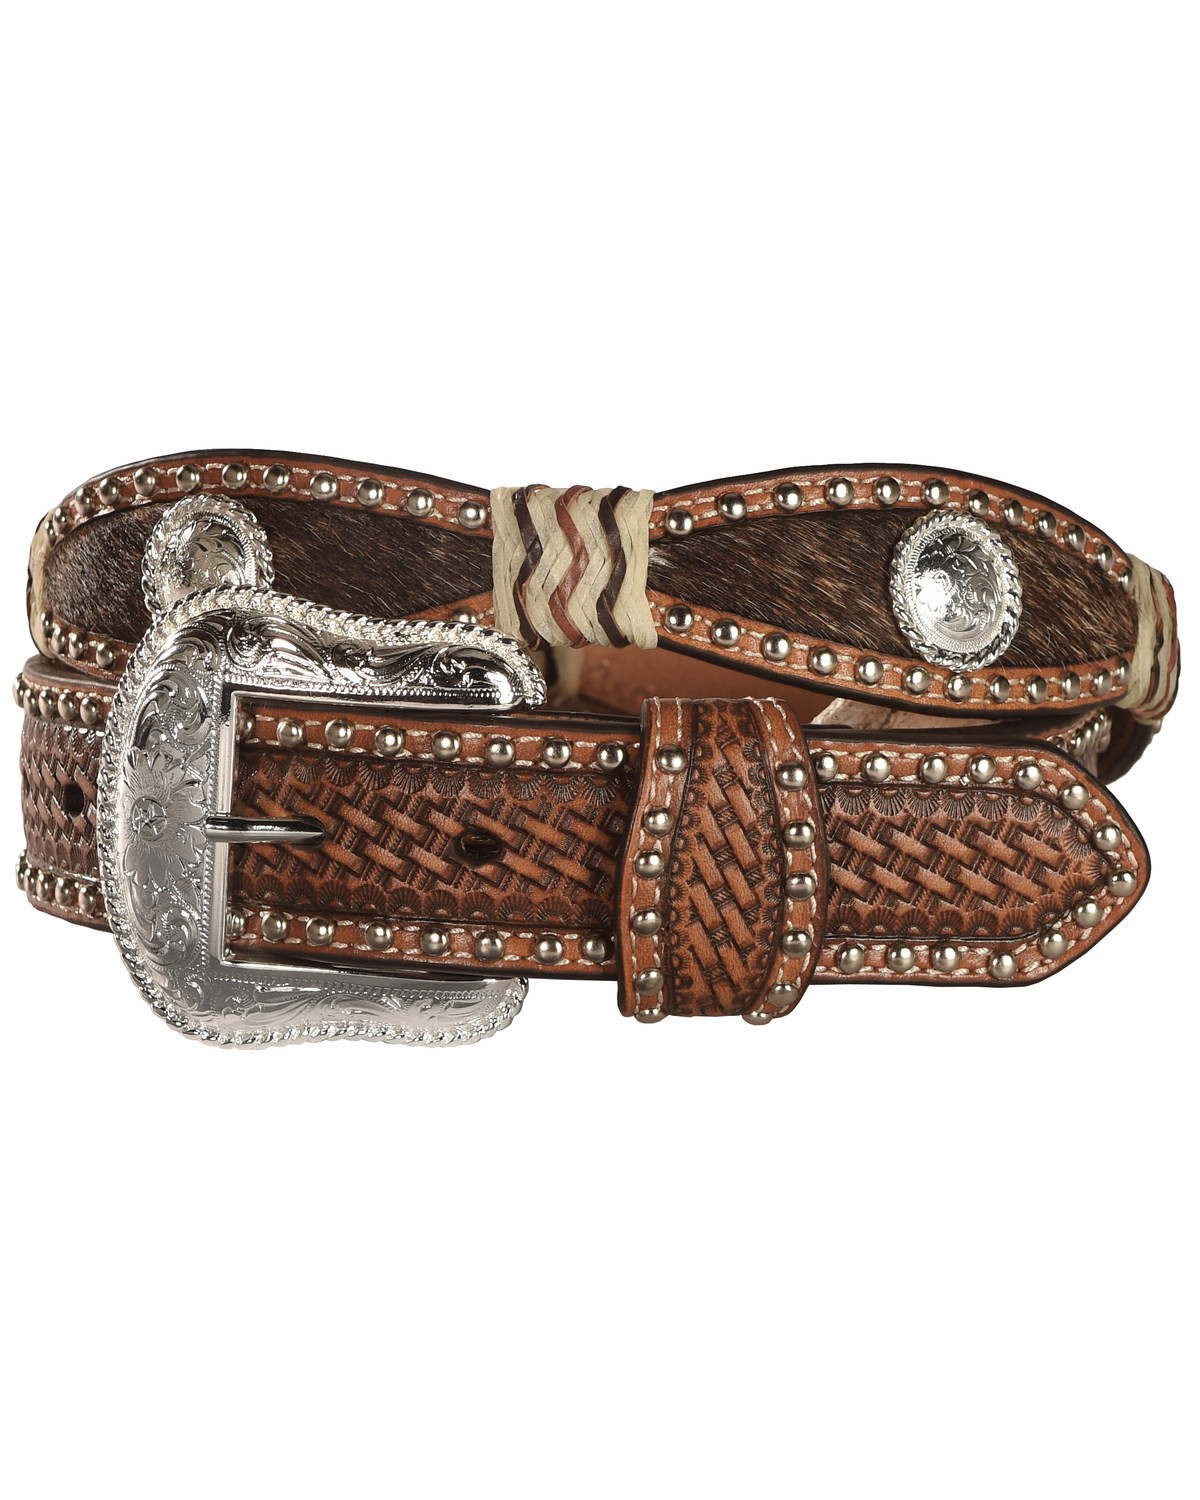 9ffbbf7bb3d Nocona Women's Scalloped and Hair on Hide Western Belt